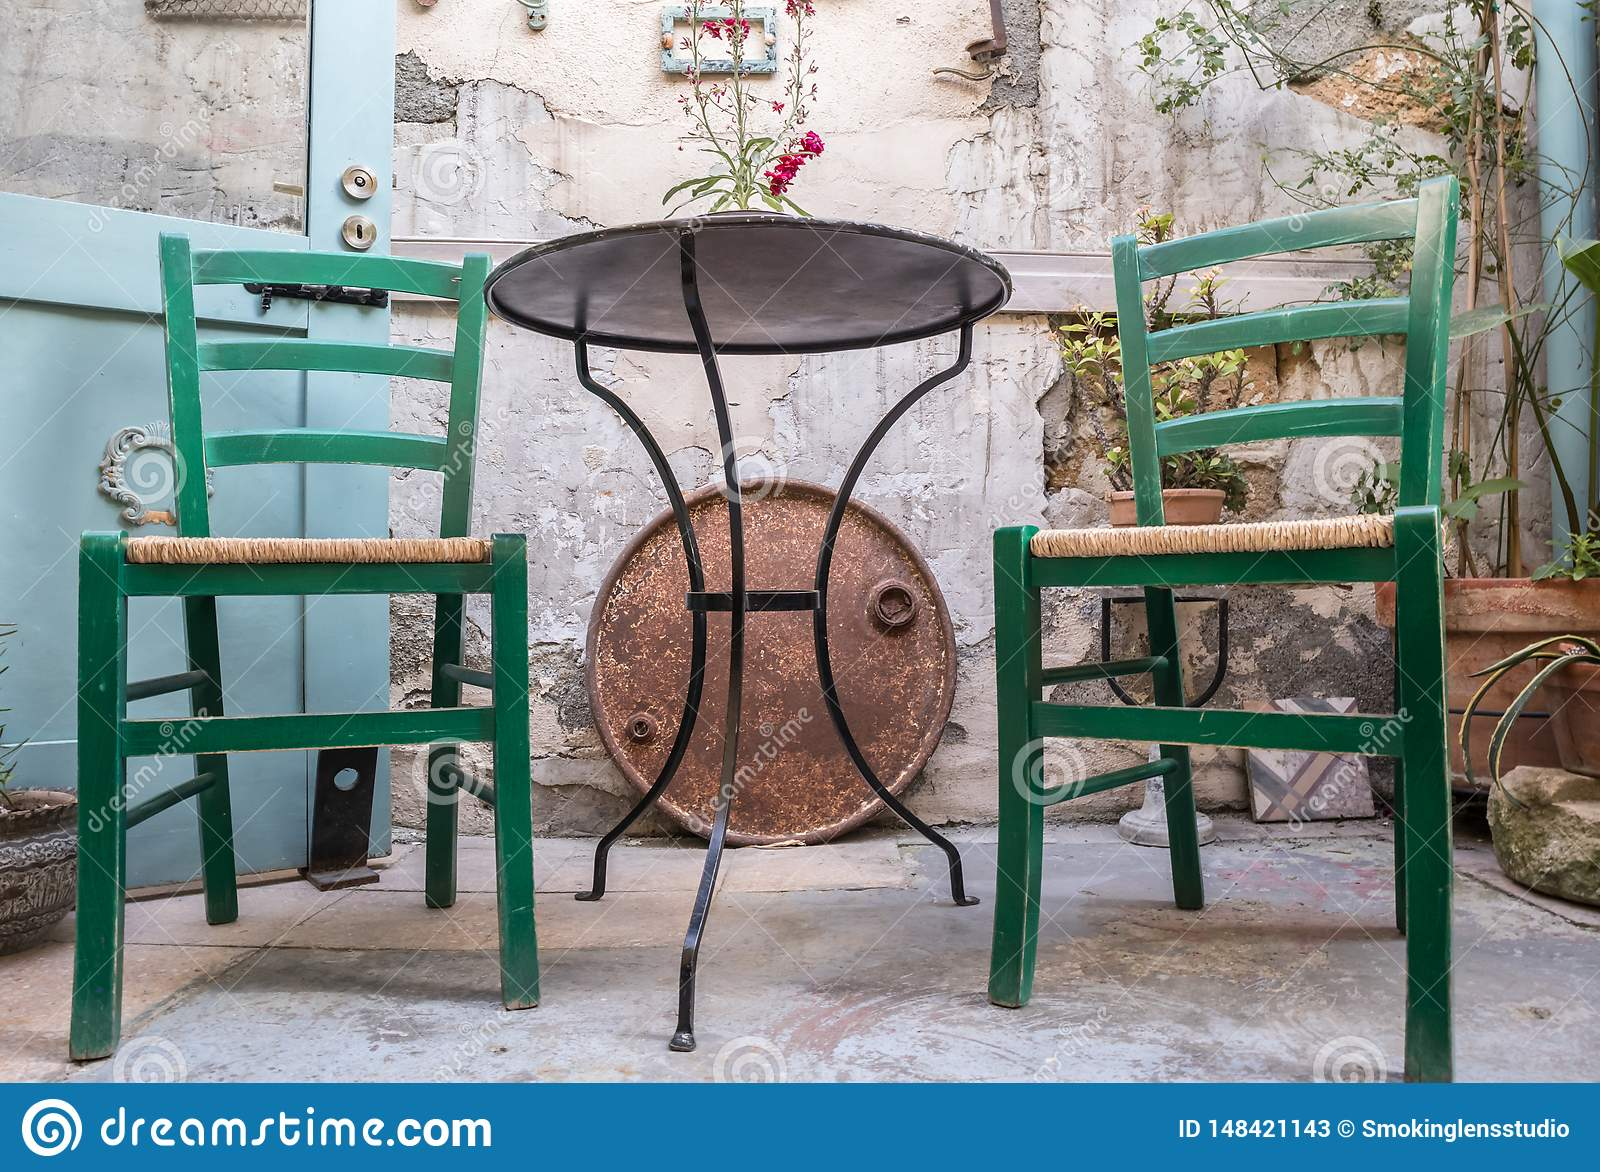 Wicker Chairs with metal table